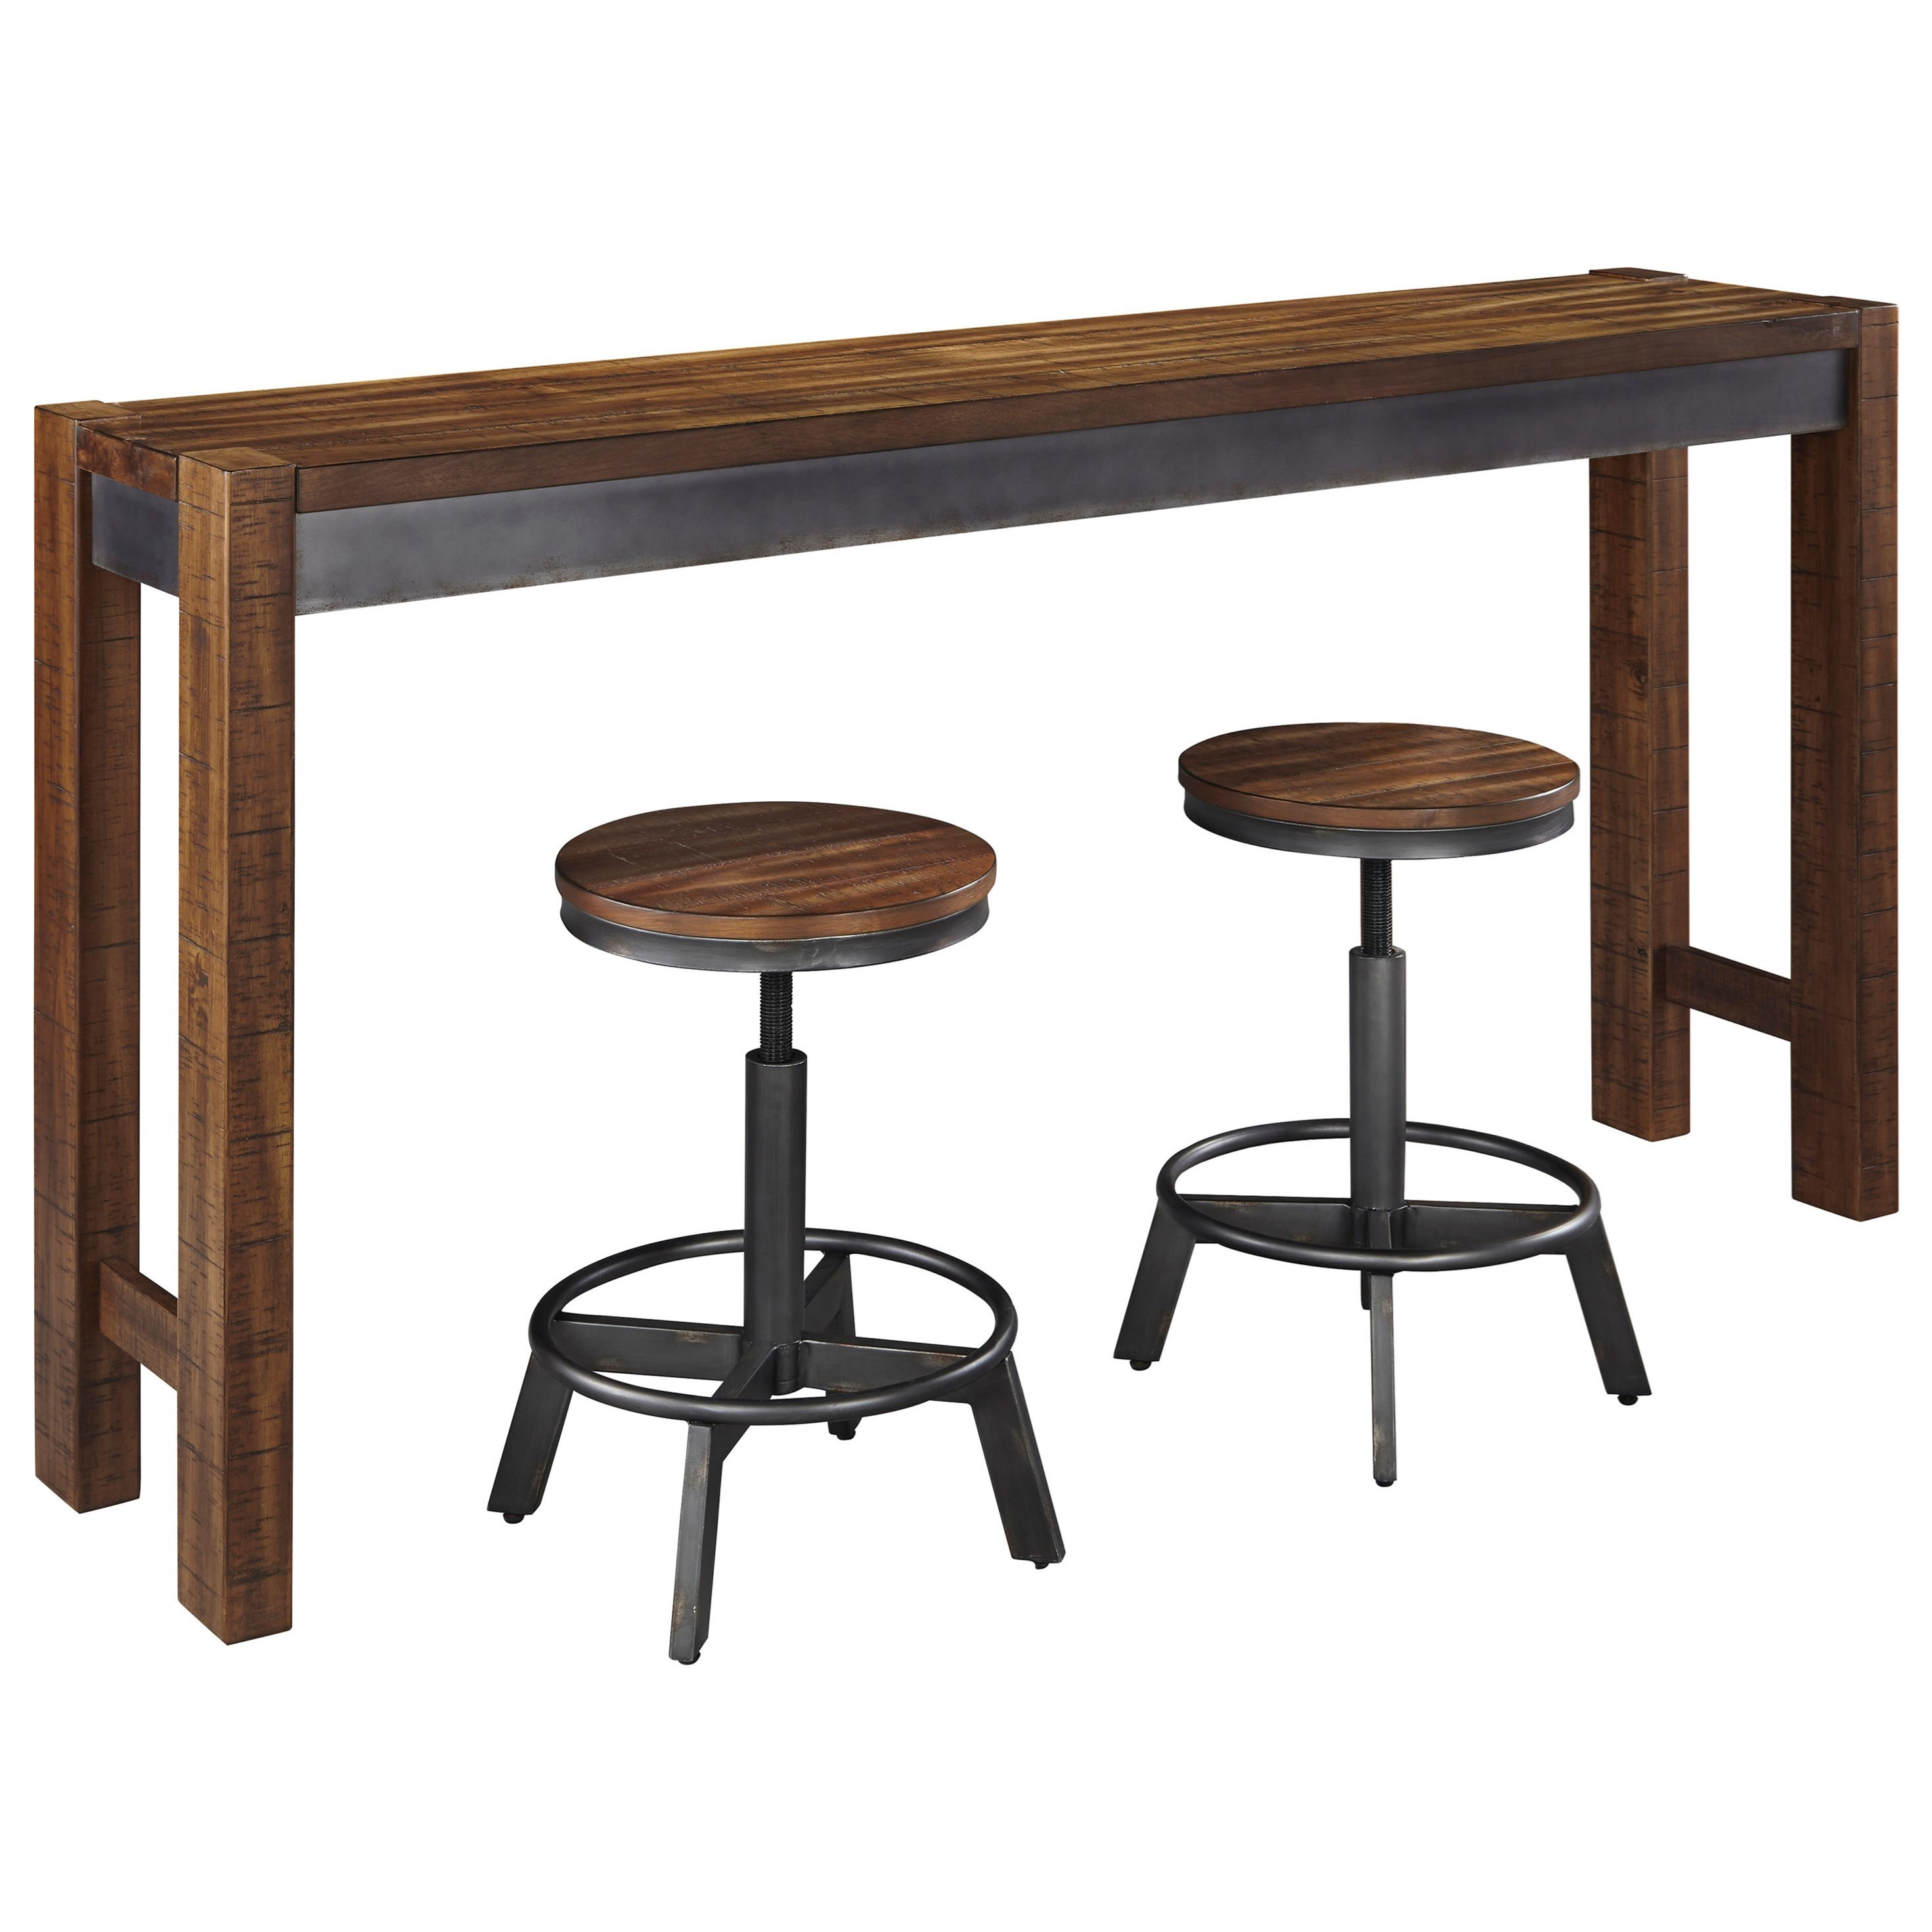 Signature Design By Ashley Torjin 3 Piece Rustic Long Counter Table Set